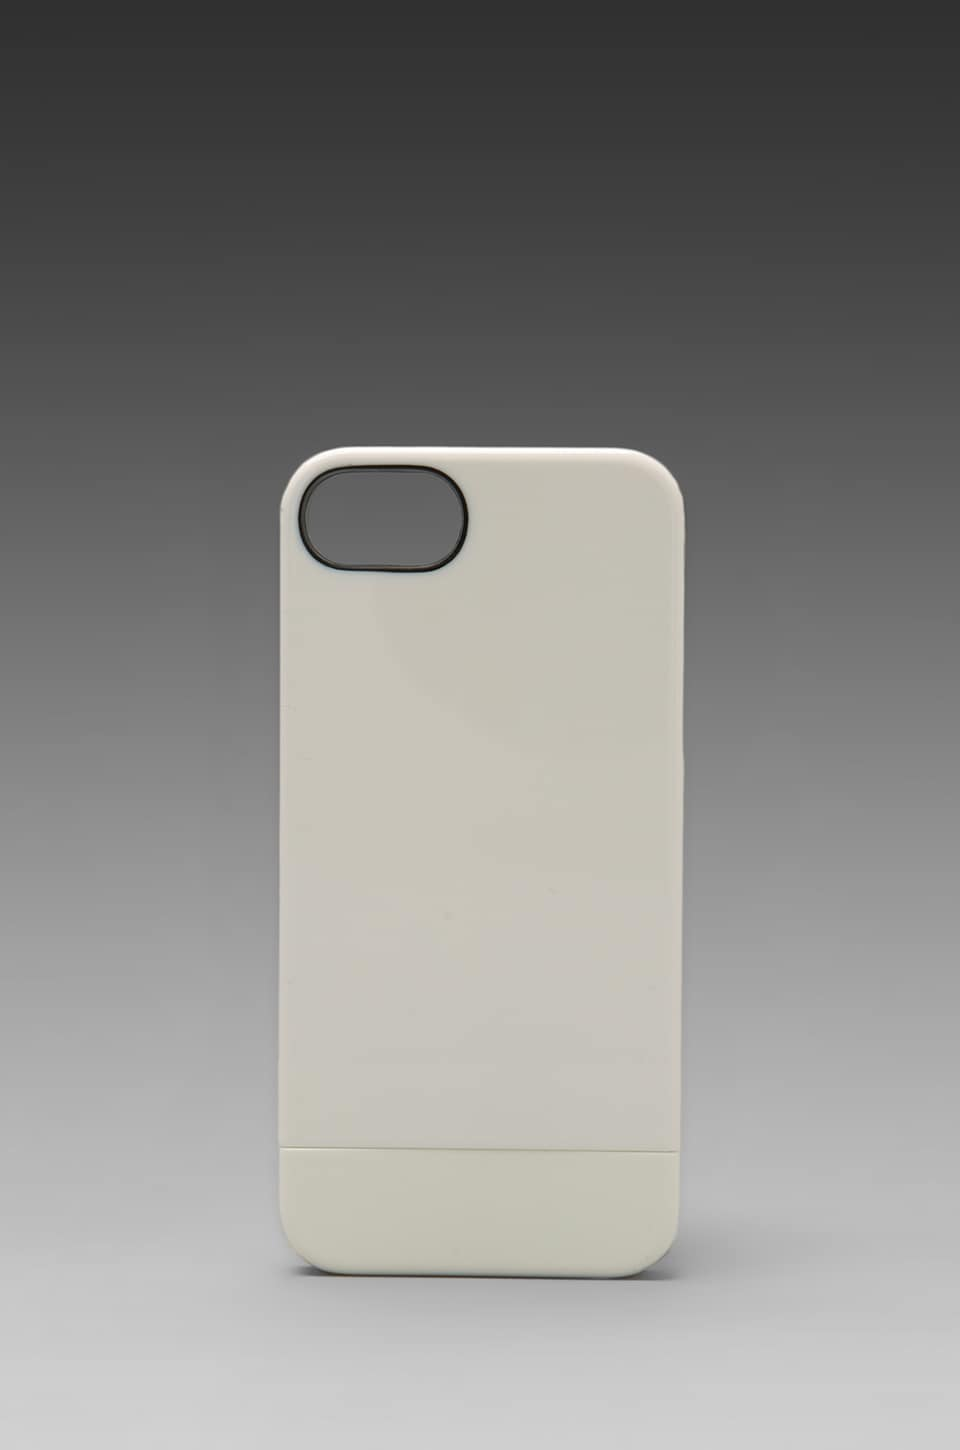 INCASE Slider Case for iPhone 5 in White Gloss